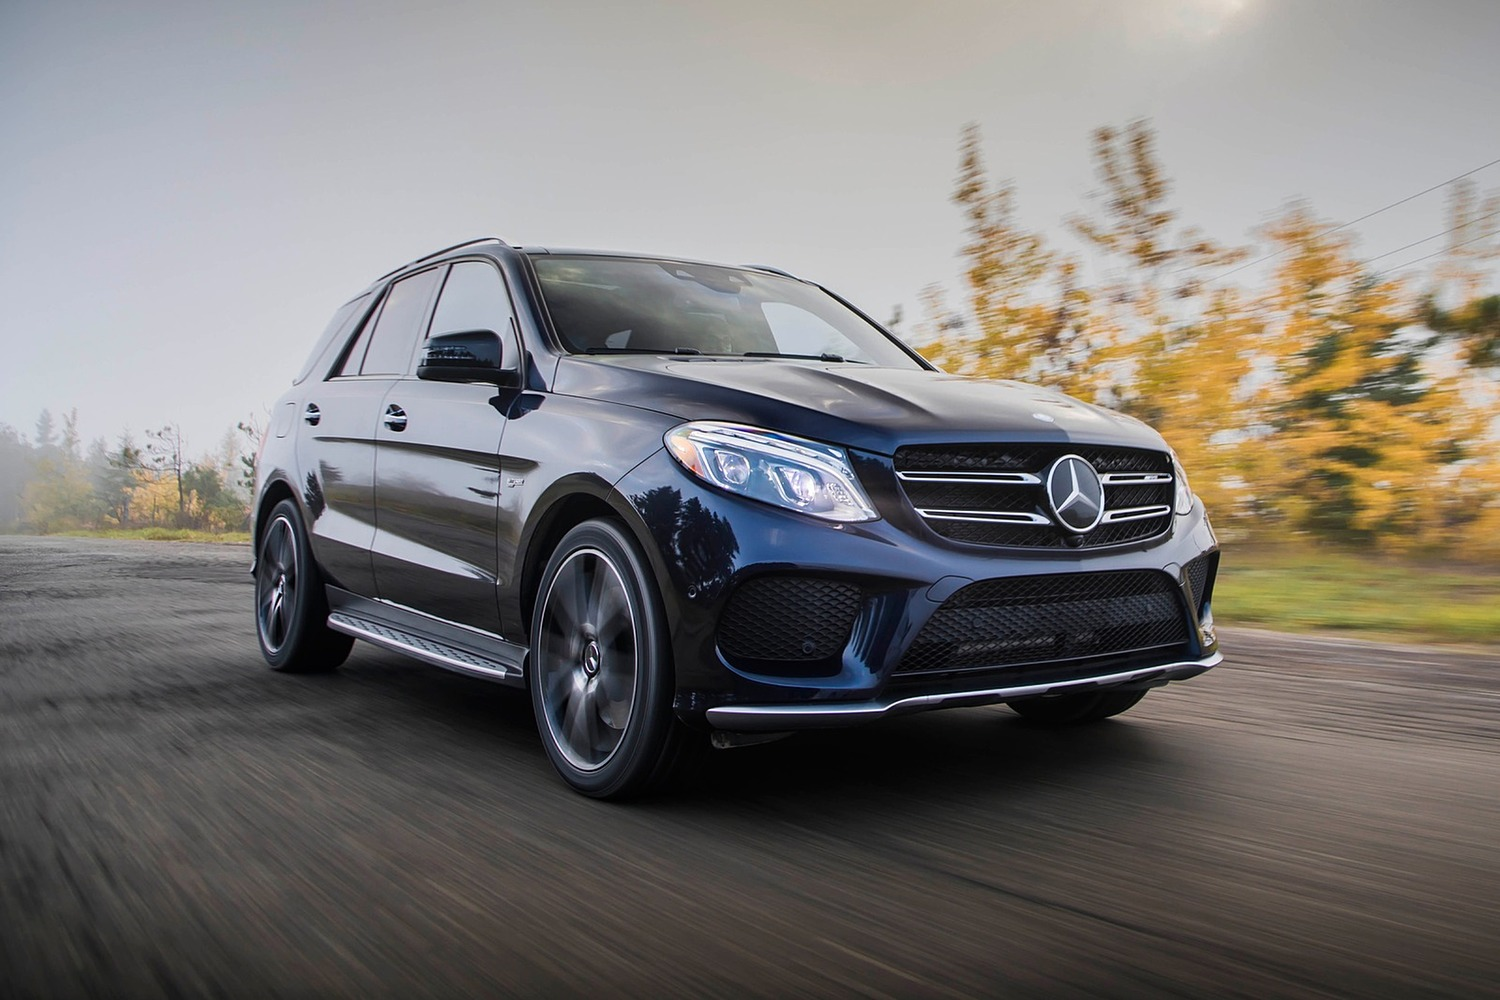 2018 mercedes benz gle class amg gle 43 4matic suv vehie. Black Bedroom Furniture Sets. Home Design Ideas